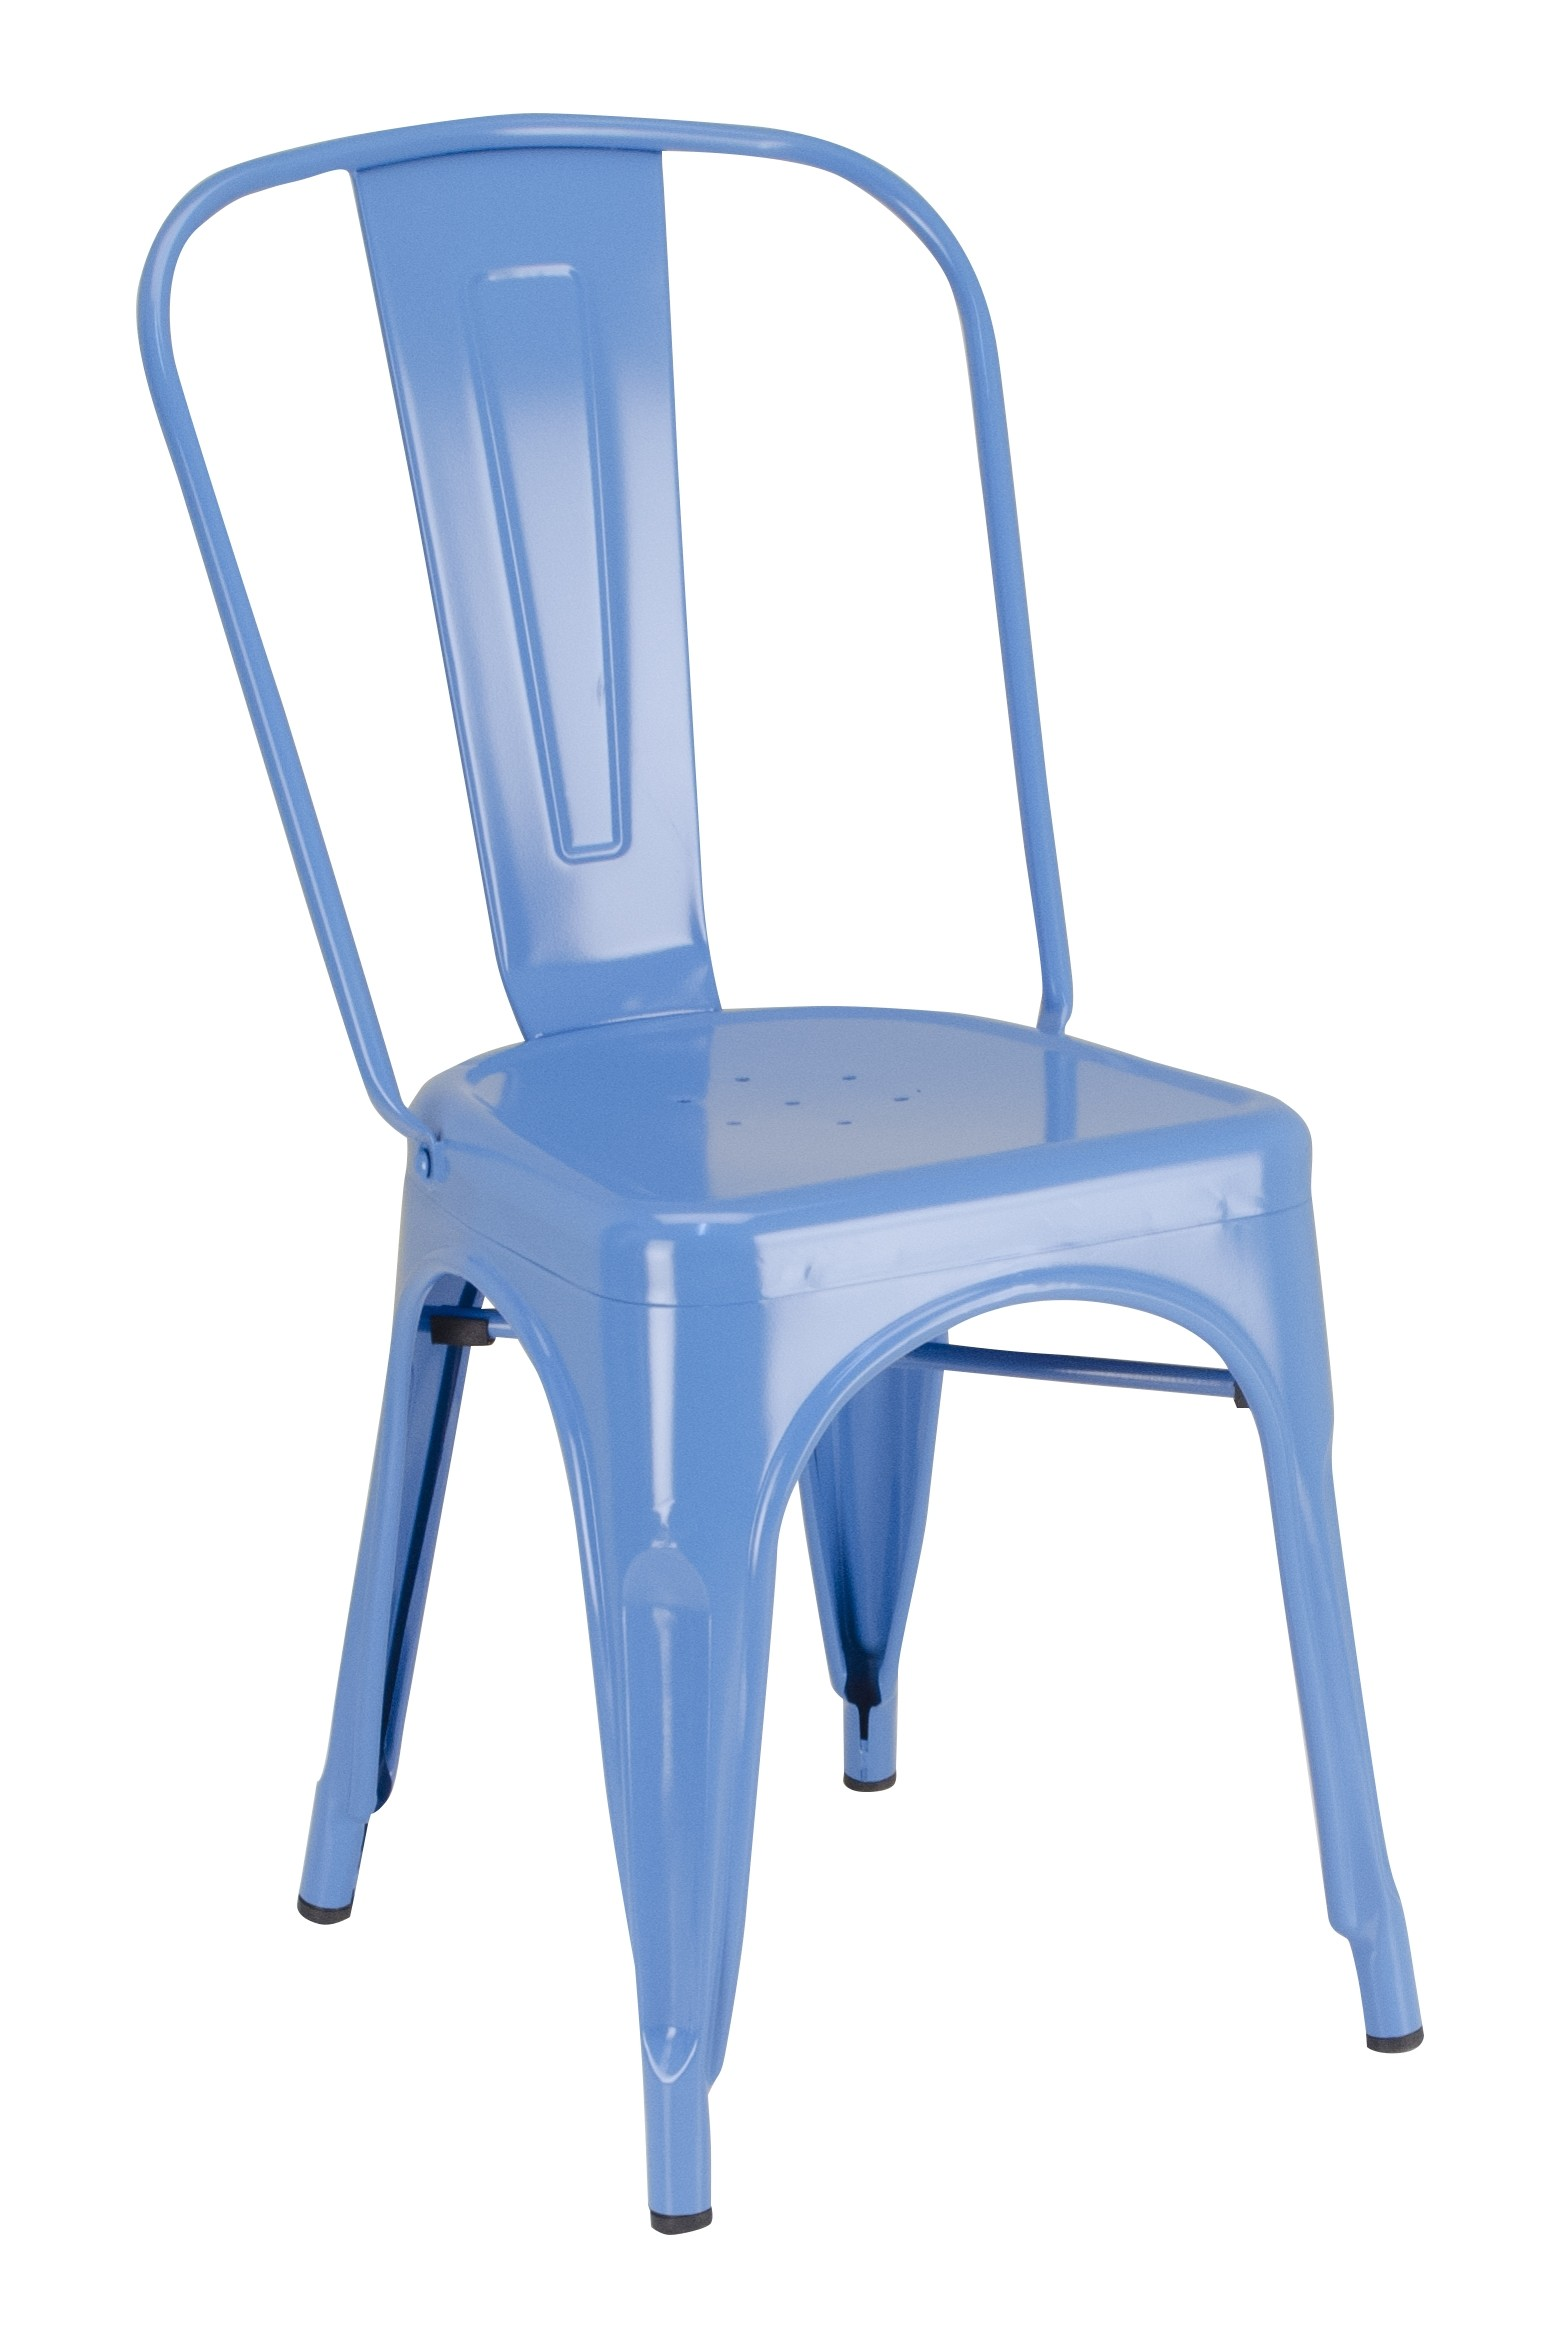 Calais Metal Dining Chair - Blue